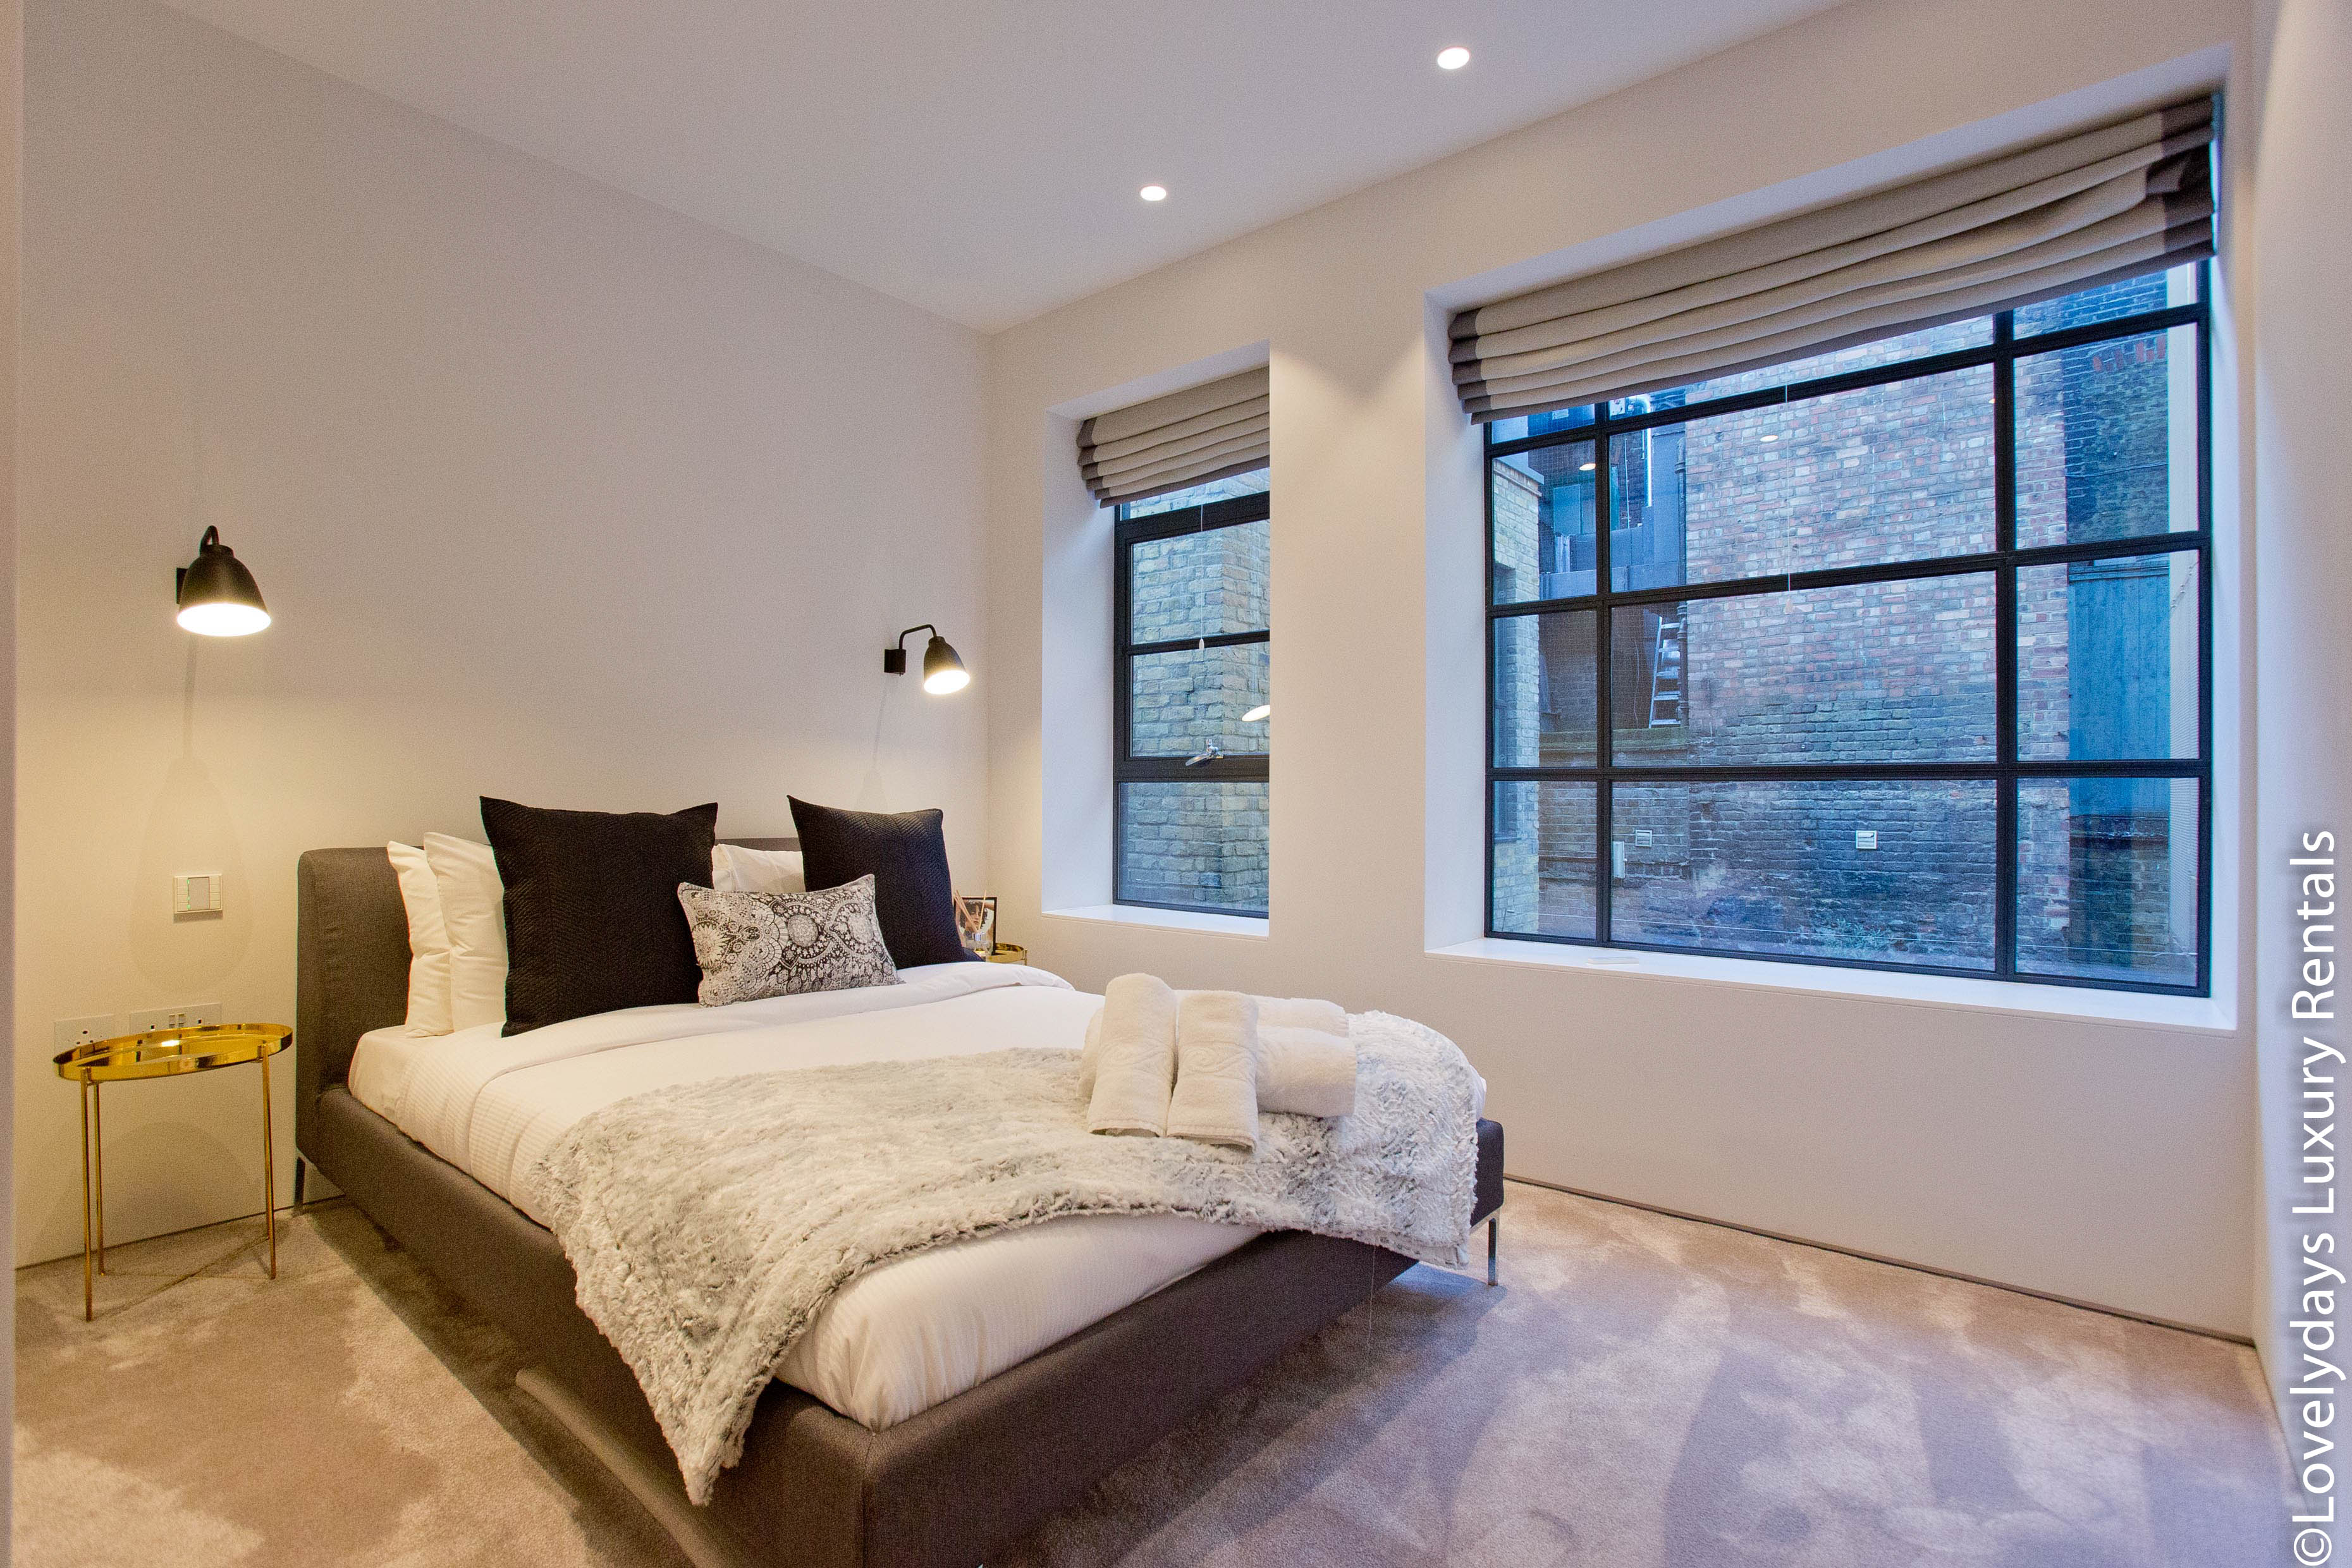 Lovelydays luxury service apartment rental - London - Soho - Royalty Mews III - Partner - 2 bedrooms - 2 bathrooms - Queen bed - d8e6ab40a0f6 - Lovelydays